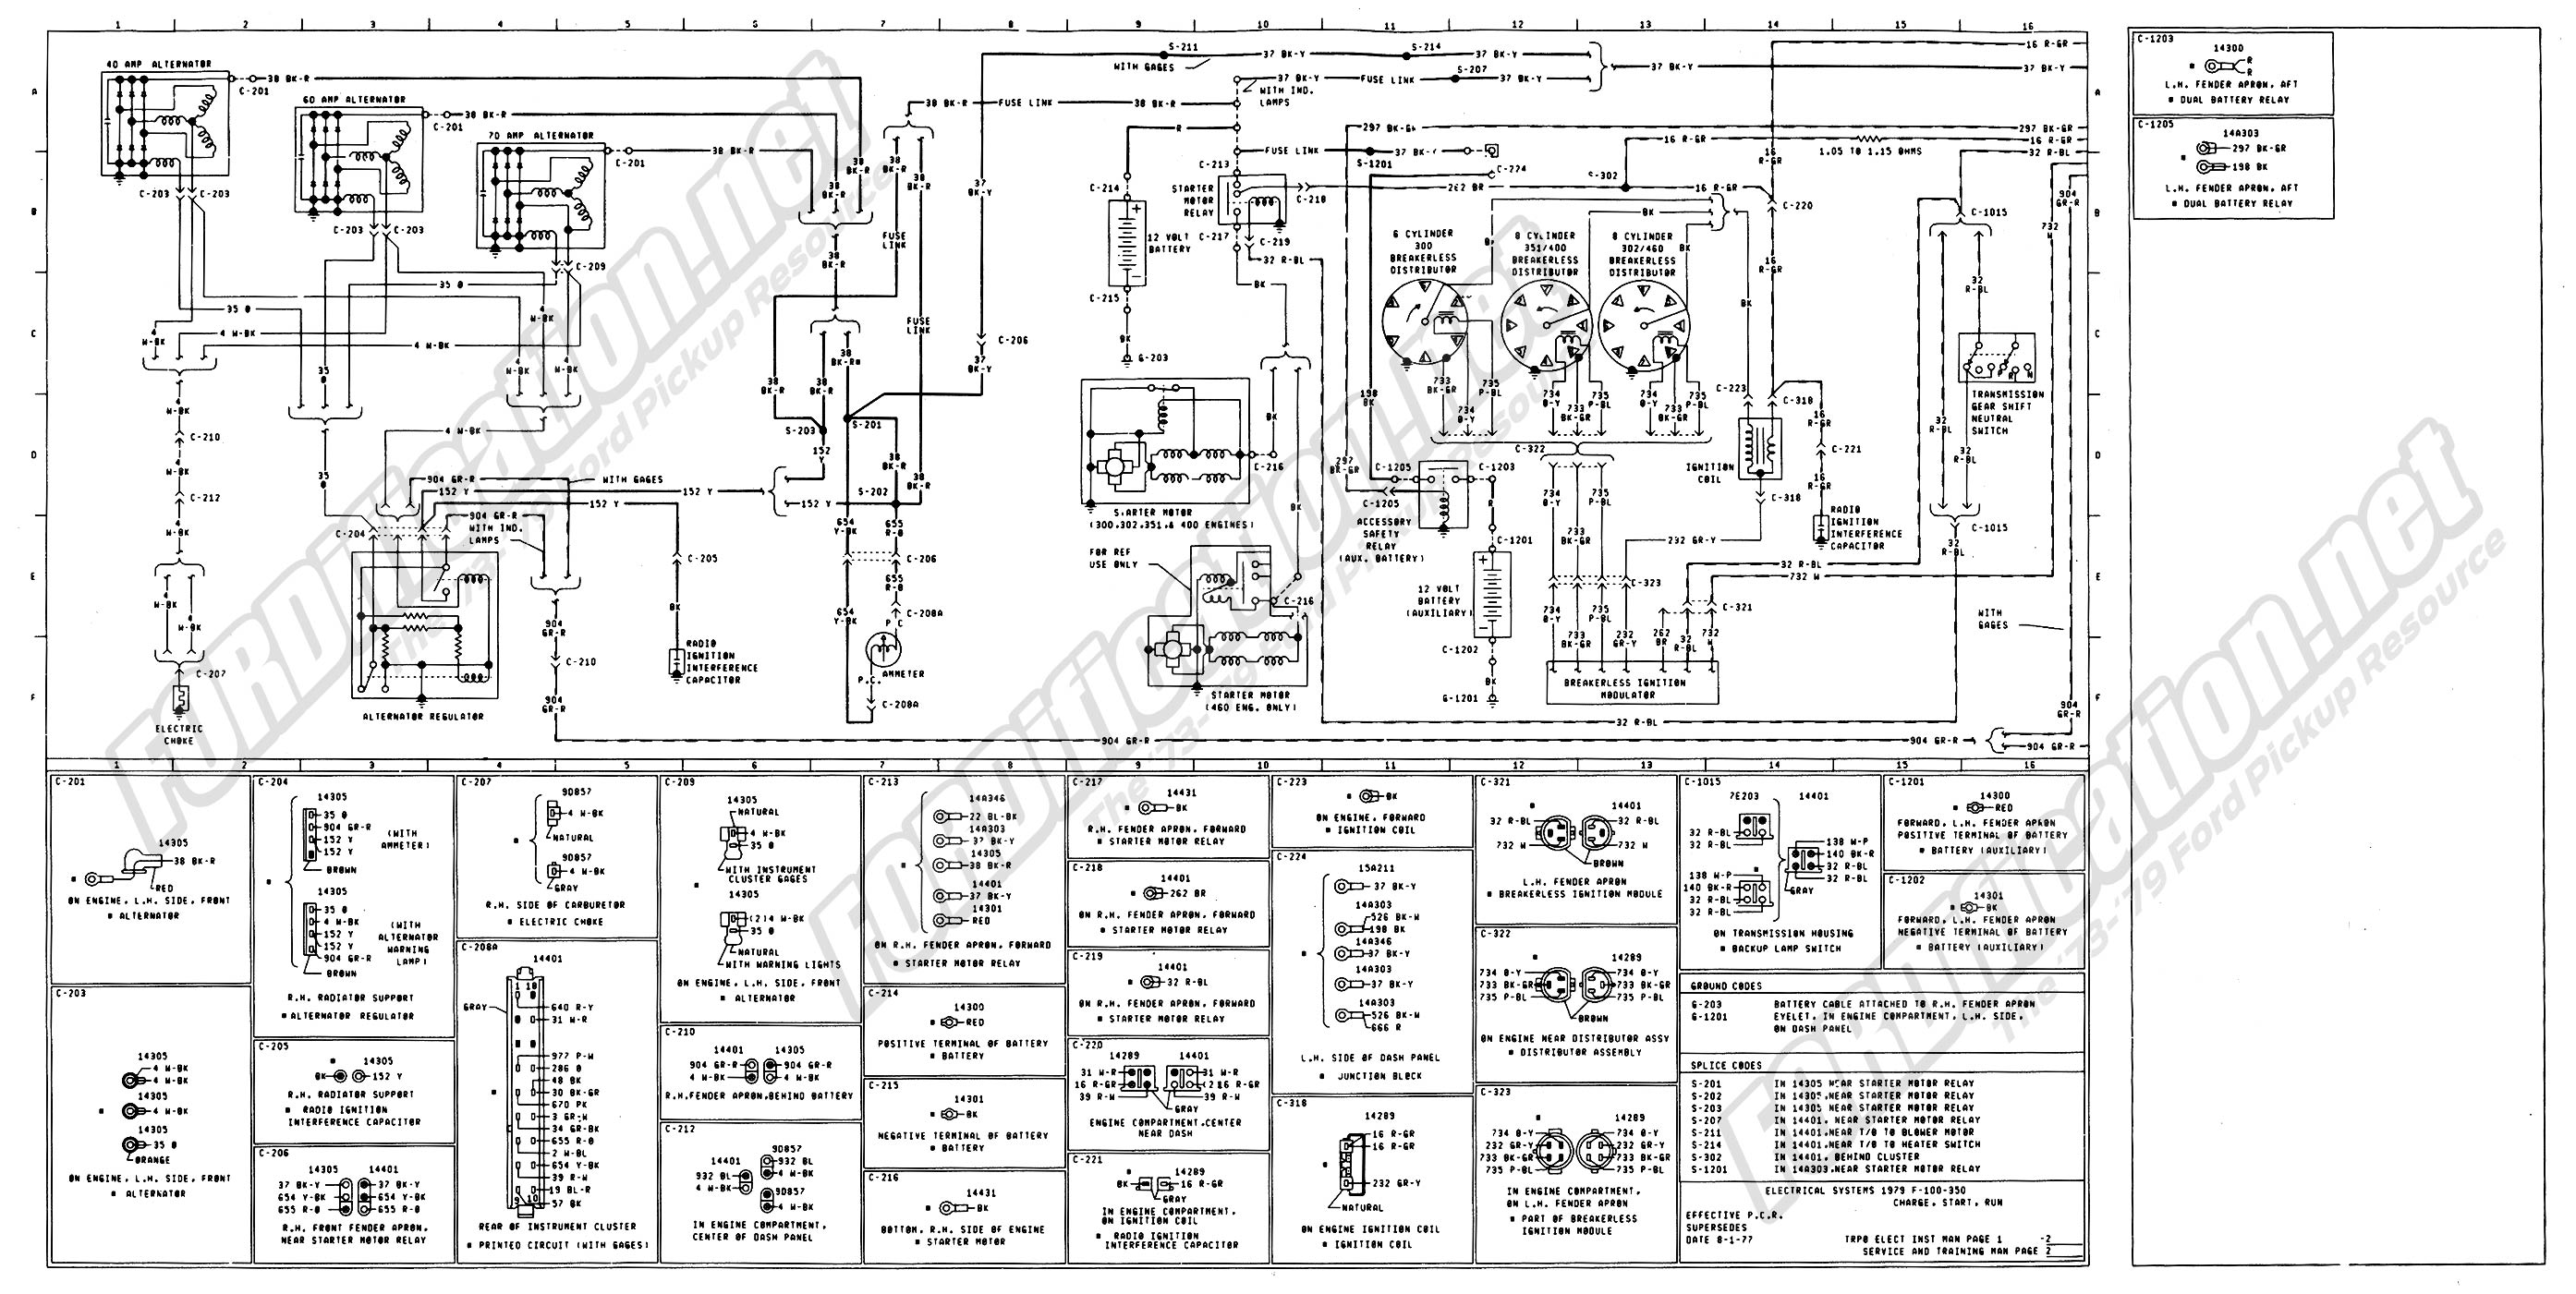 wiring_79master_2of9 1973 1979 ford truck wiring diagrams & schematics fordification net wiring diagram for dummies at nearapp.co